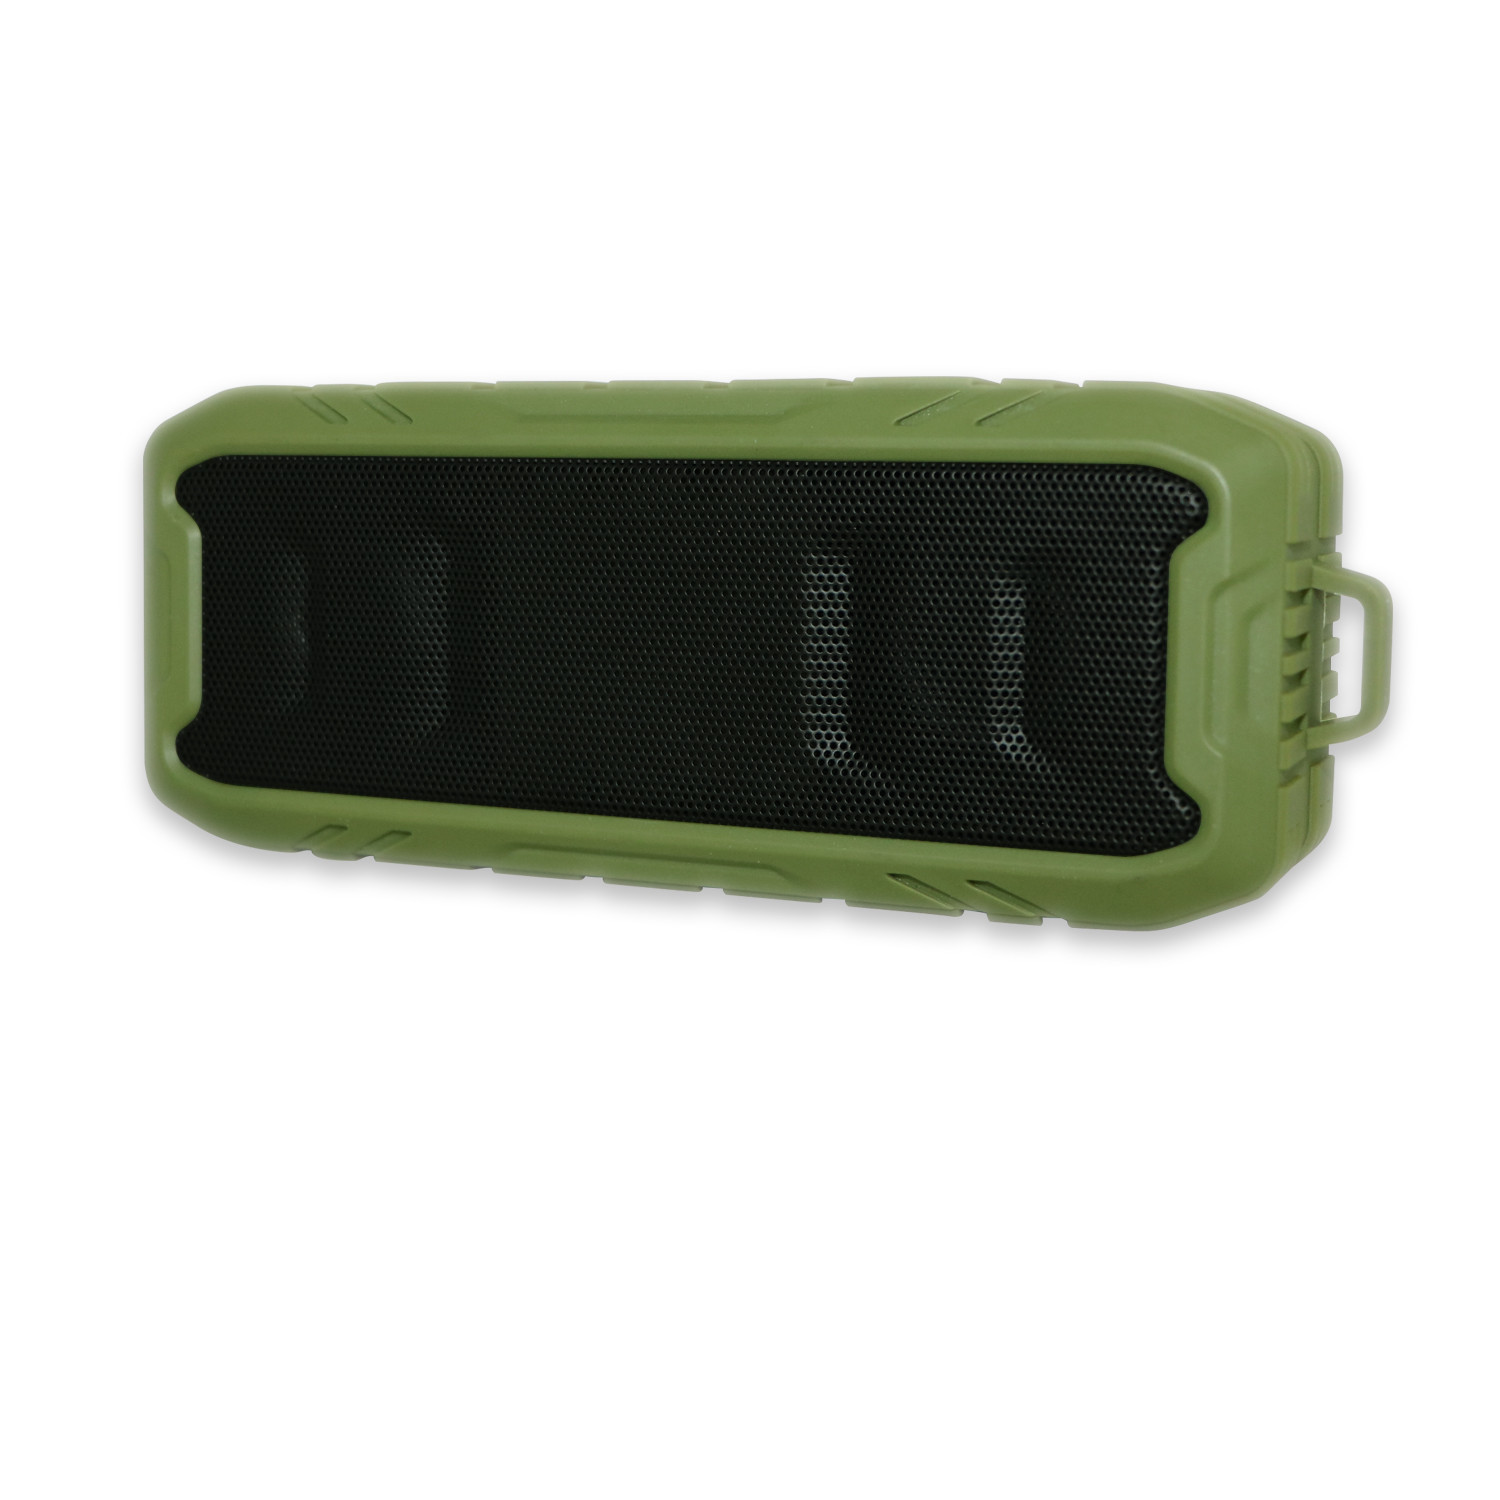 pocket cheap bluetooth speakers subwoofer Winbridge company